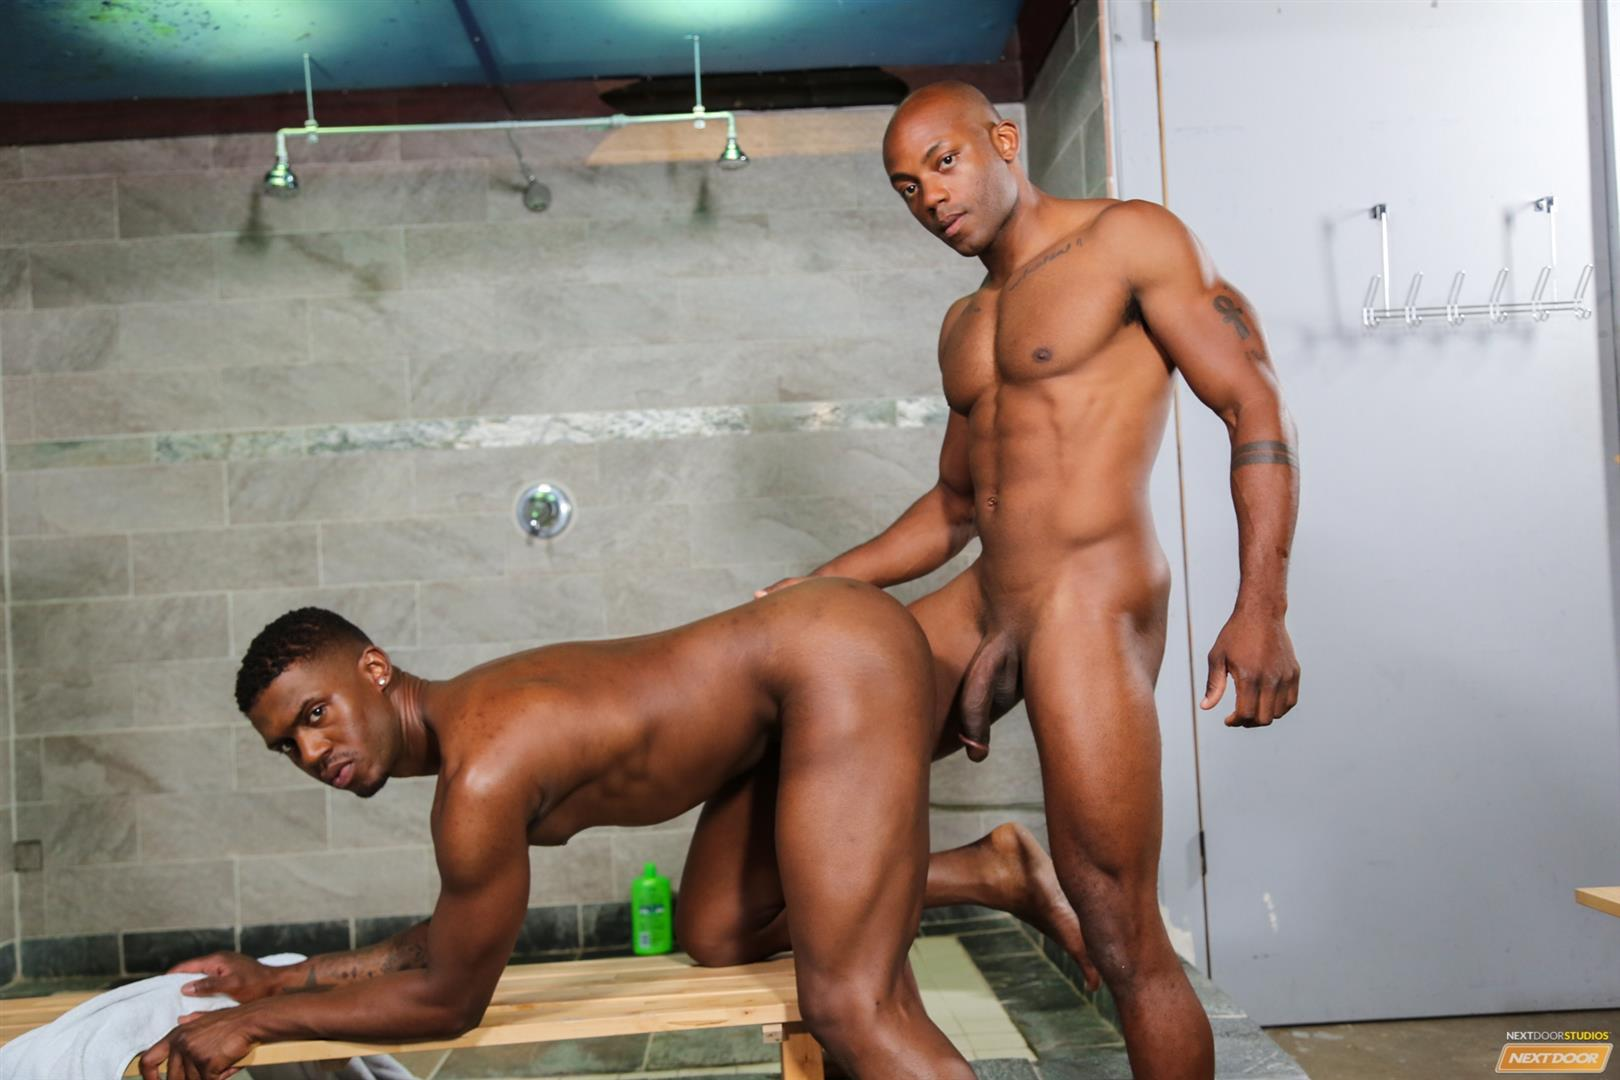 Next-Door-Ebony-Krave-Moore-and-Osiris-Blade-Big-Black-Cocks-Dicks-Fucking-Amateur-Gay-Porn-12 Muscular Black Guys Take Turns Fucking Each Other In The Locker Room